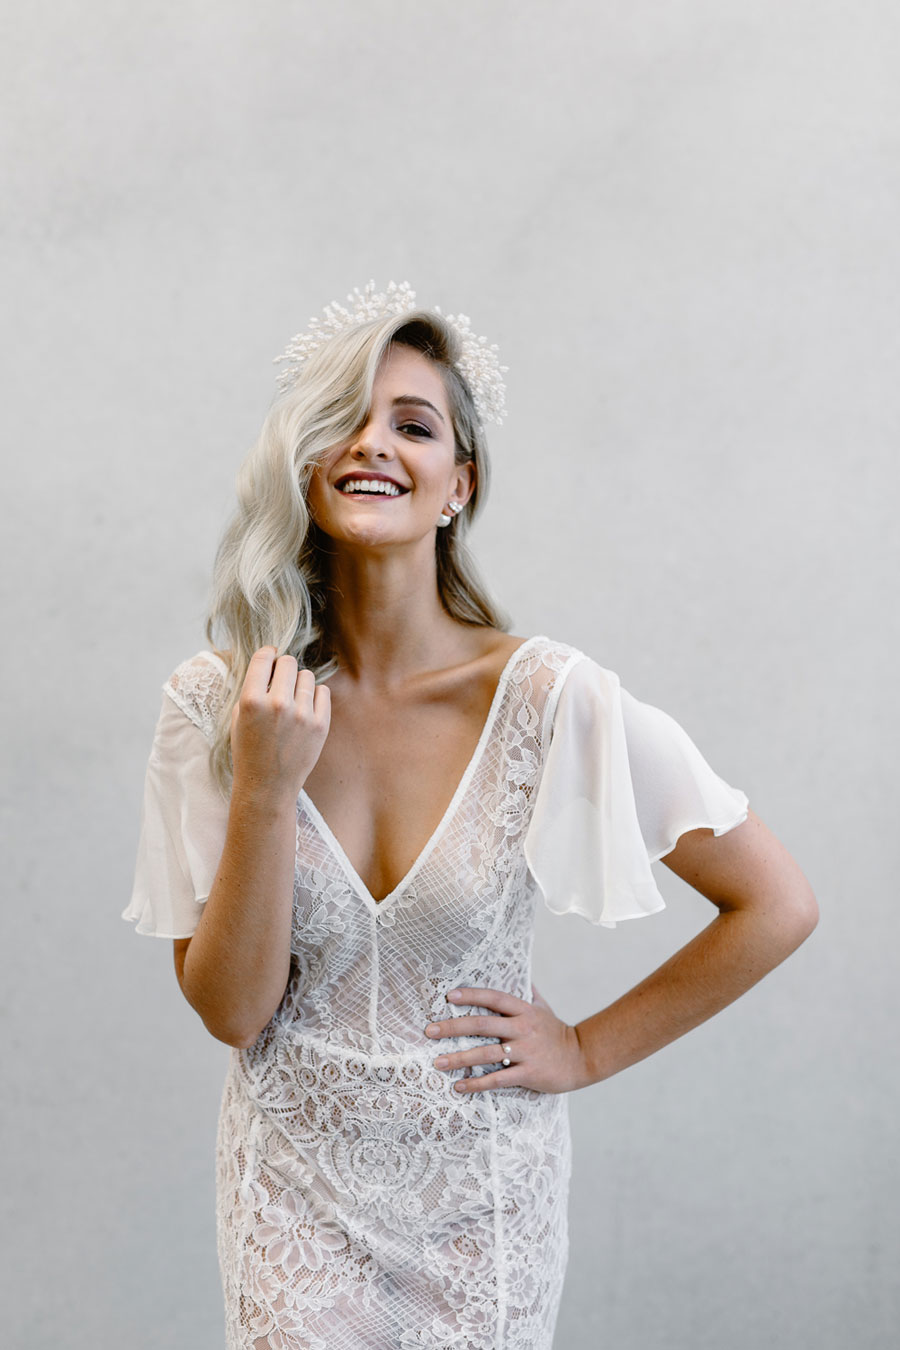 Modern Meets Vintage Bridal Gowns Love Struck The White Files and Cathleen Jia0069